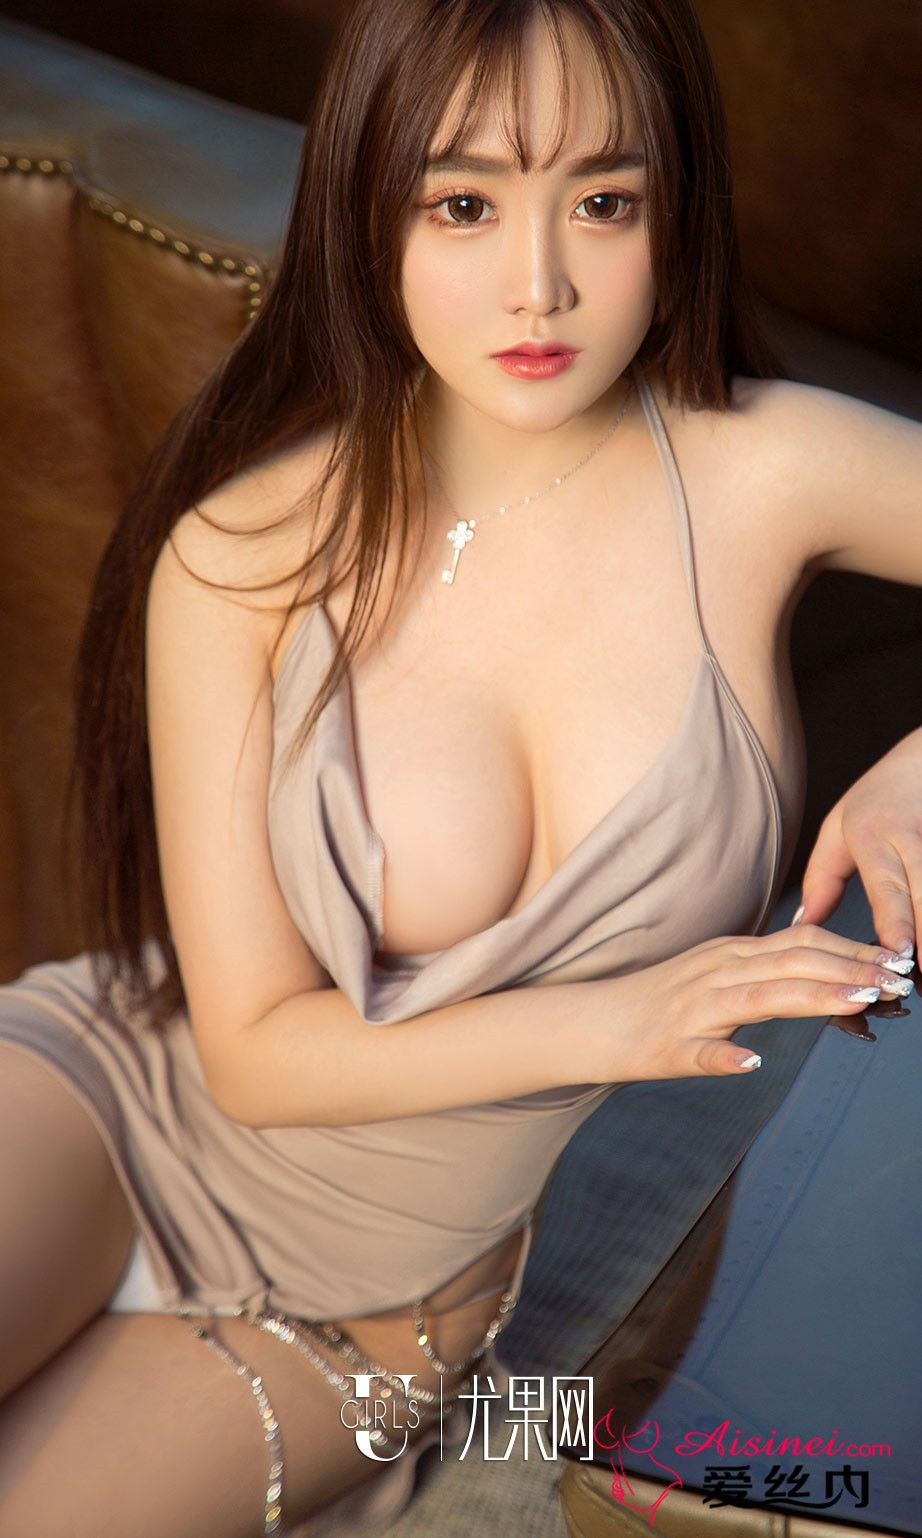 Girls World Korean Actresses Asian Doll Asia Girl Camisole Top Sexy